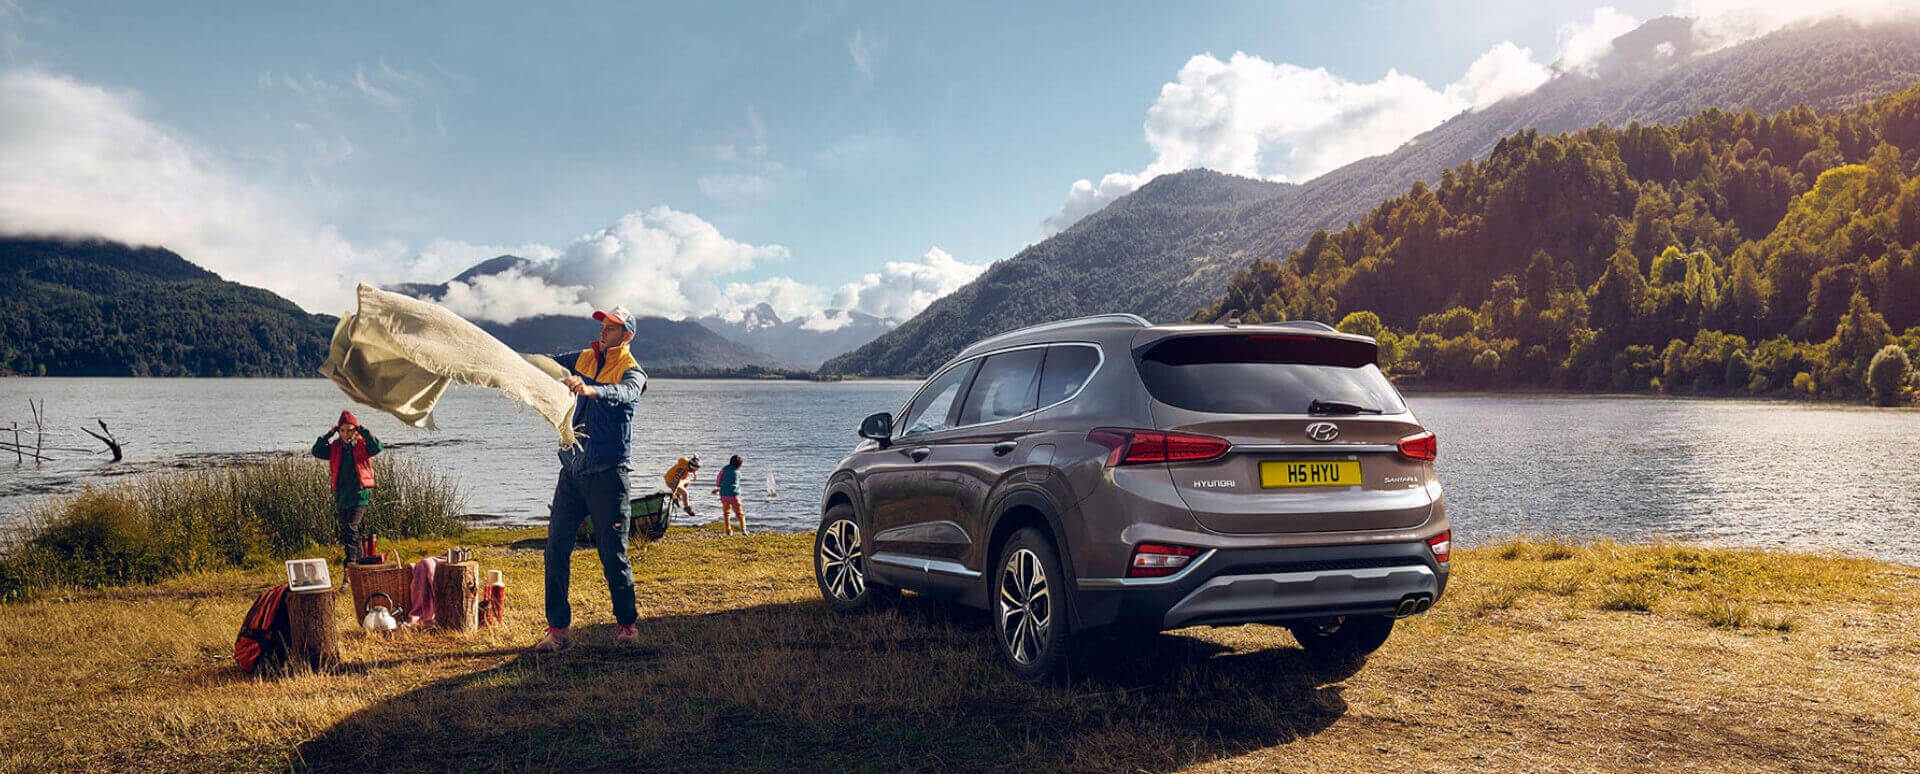 Hyundai Santa Fe Family Holiday